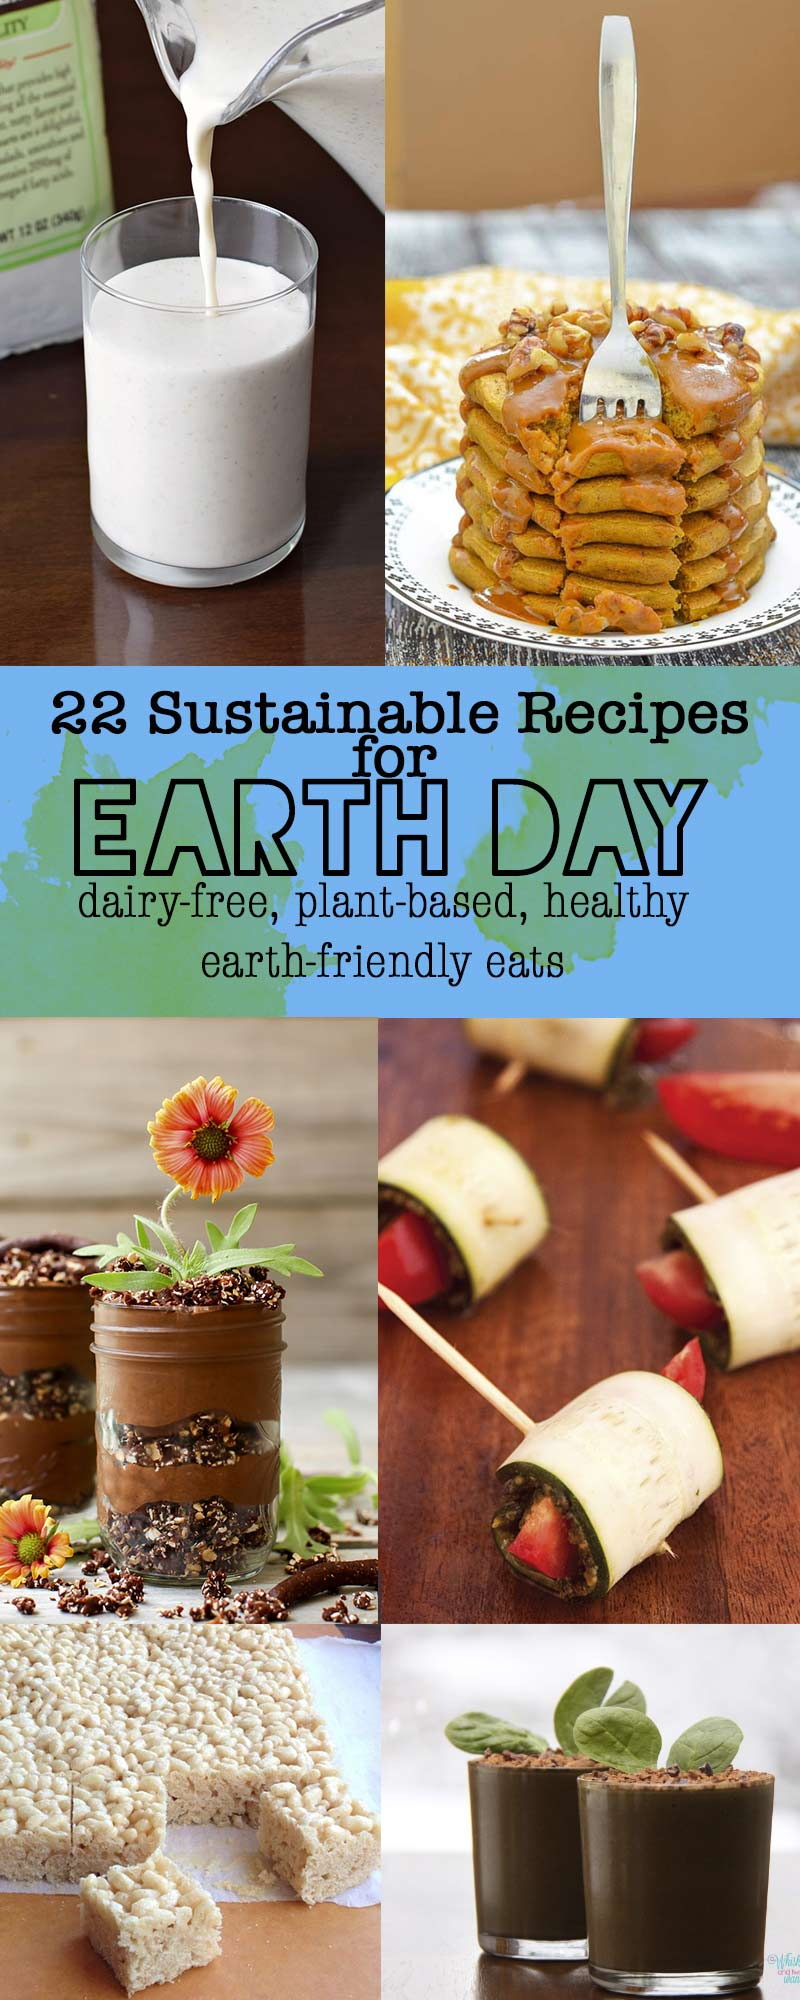 Sustainable Recipes for Earth Day and Every Day - dairy-free, plant-based, healthy and earth-friendly eats